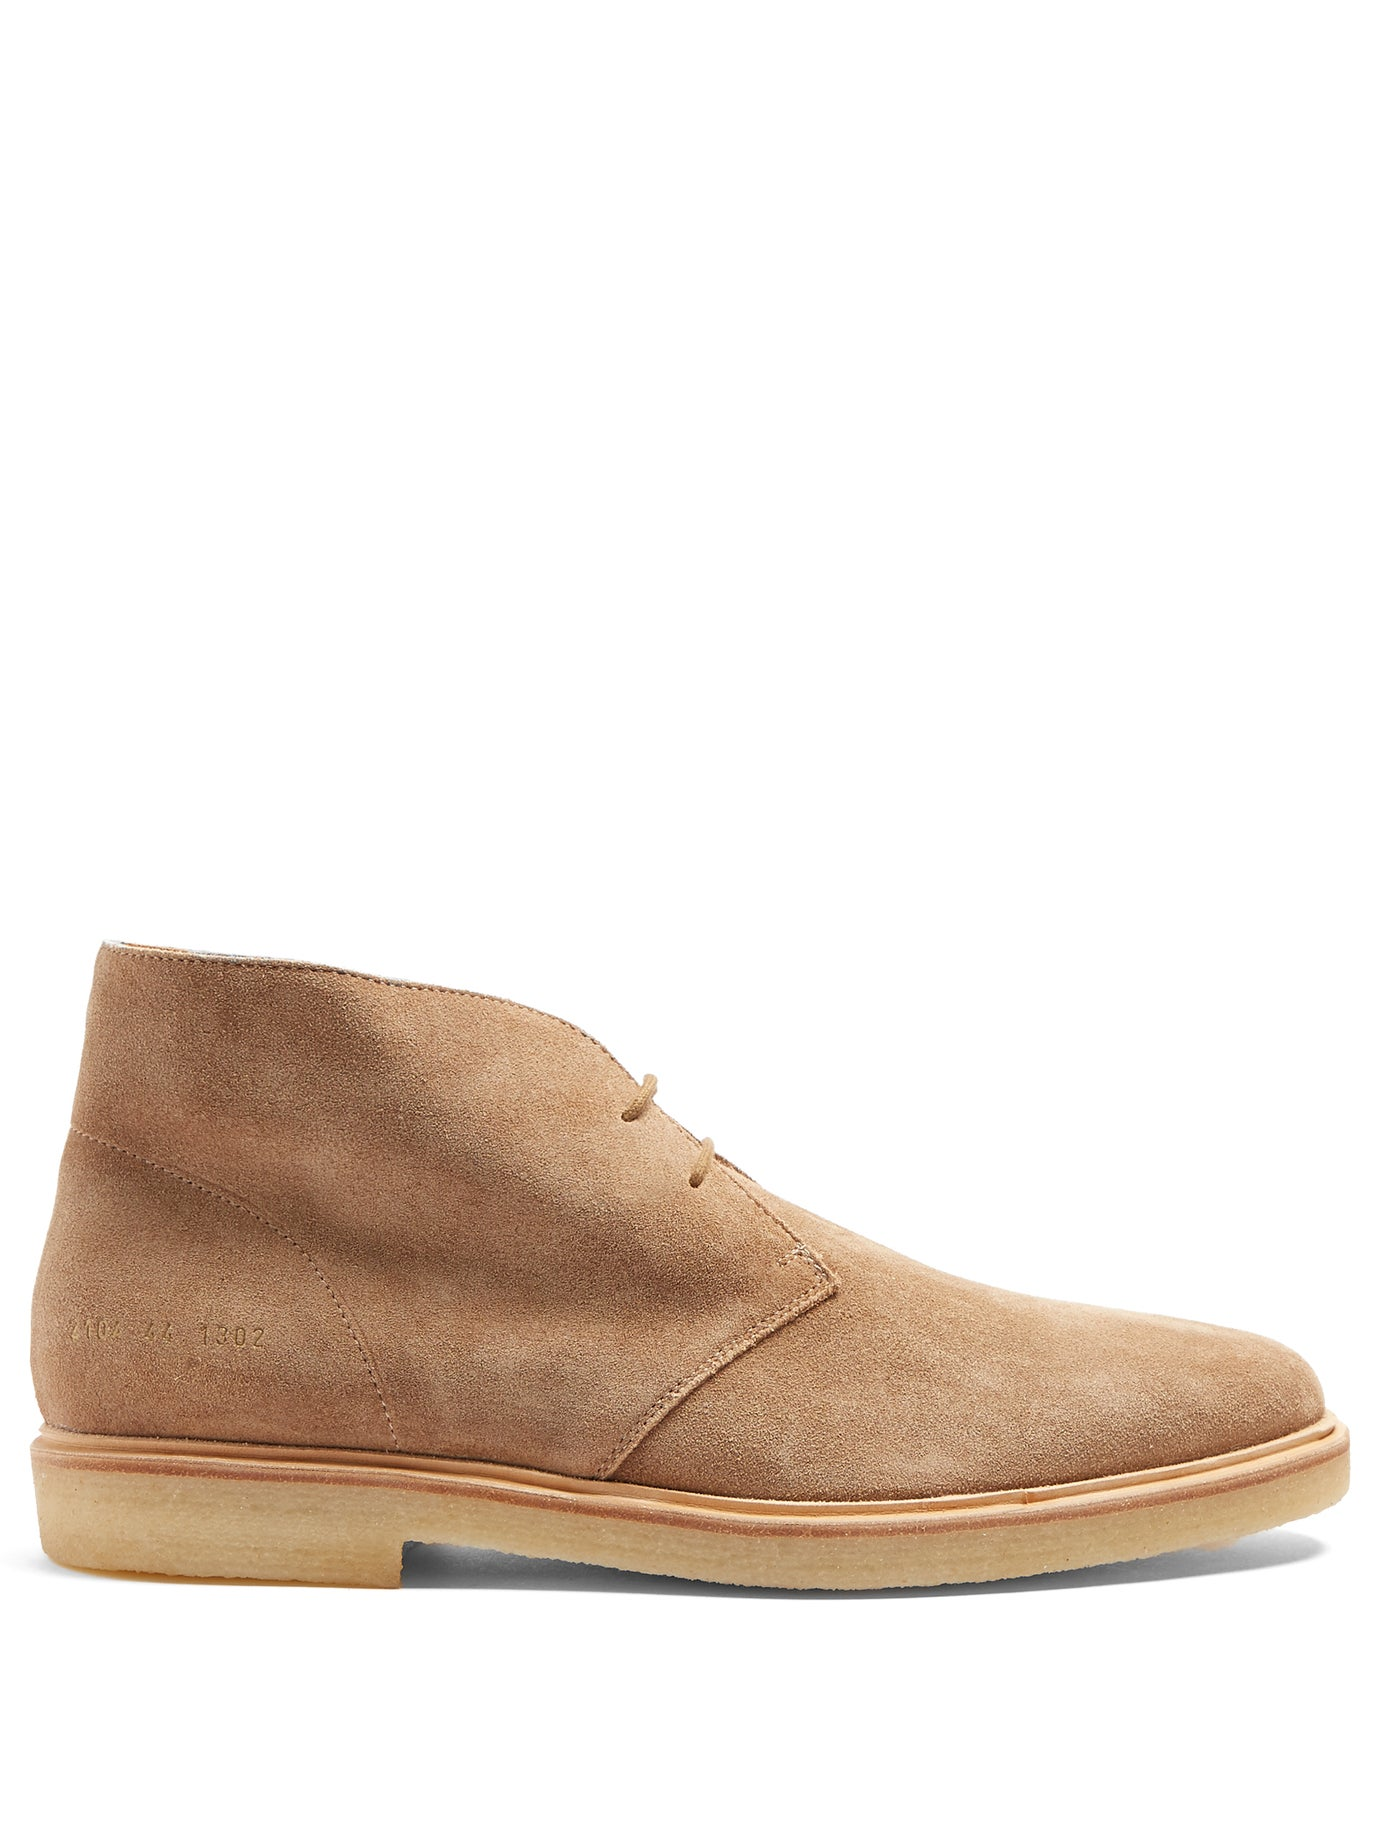 Common Projects | Suede chukka boots | Clouty